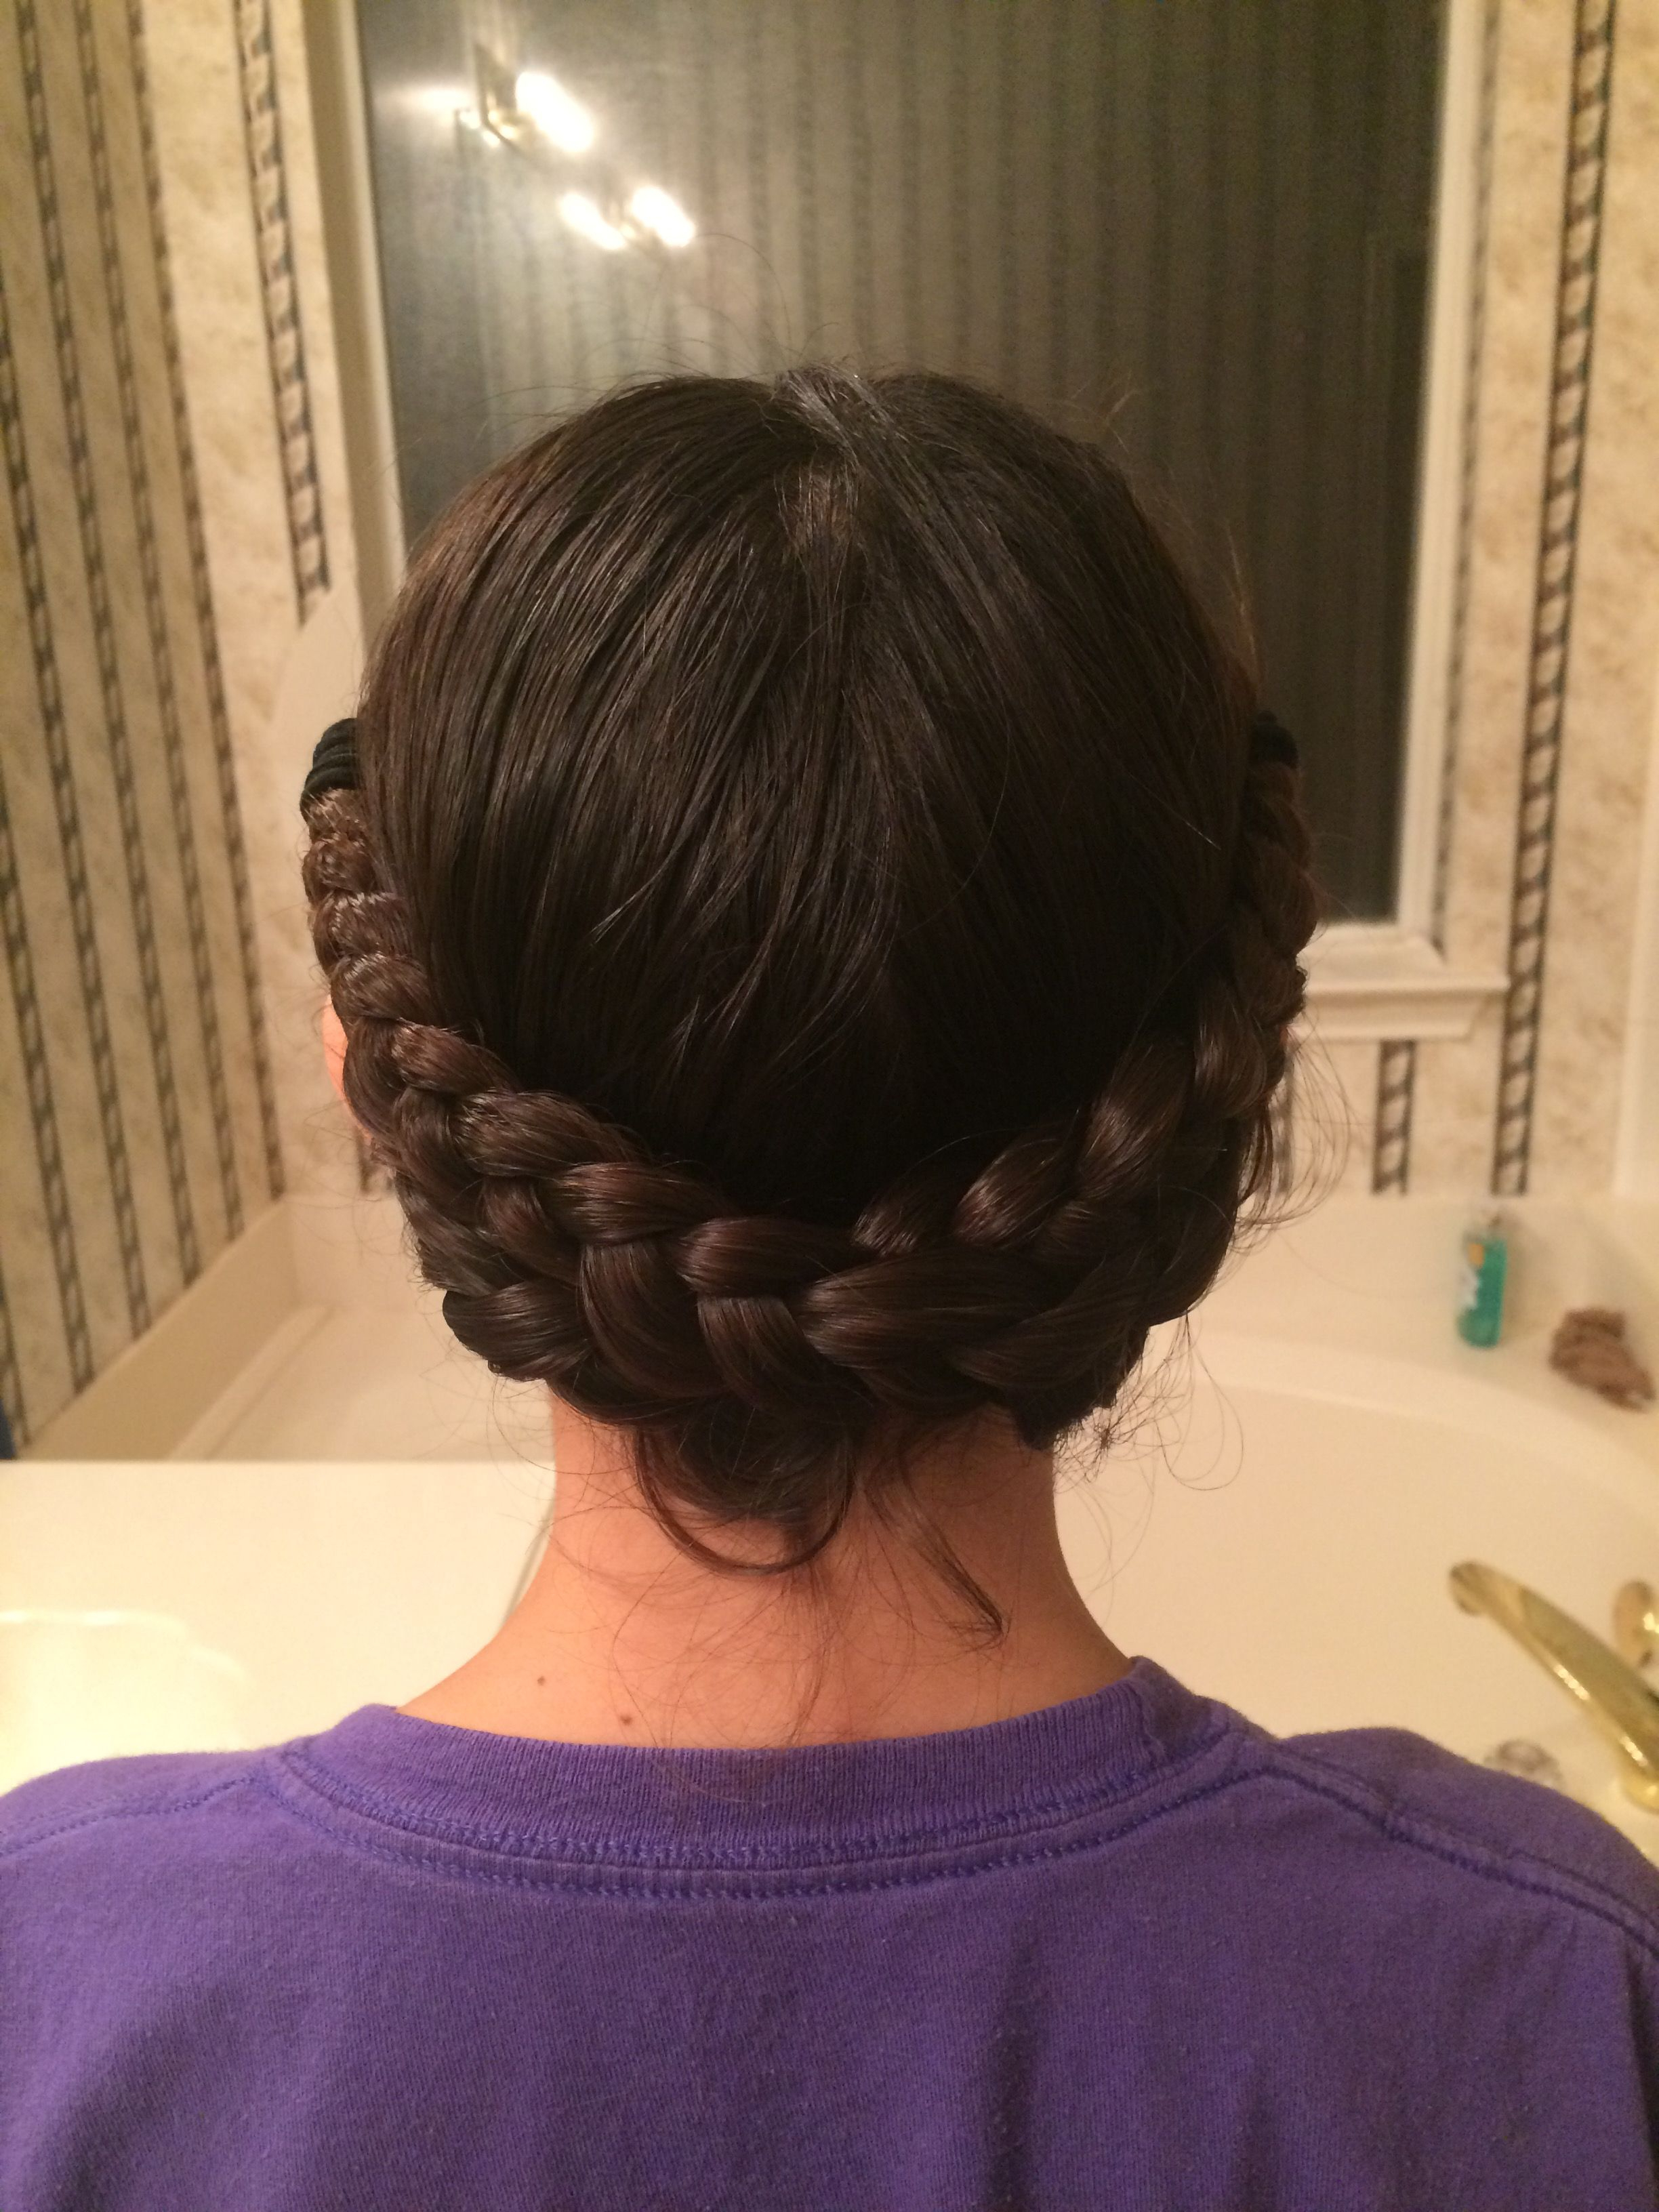 Braid Crown: 1make Two Braids On The Back Of Your Head 2 For Well Known Braided And Wrapped Hairstyles (View 2 of 20)